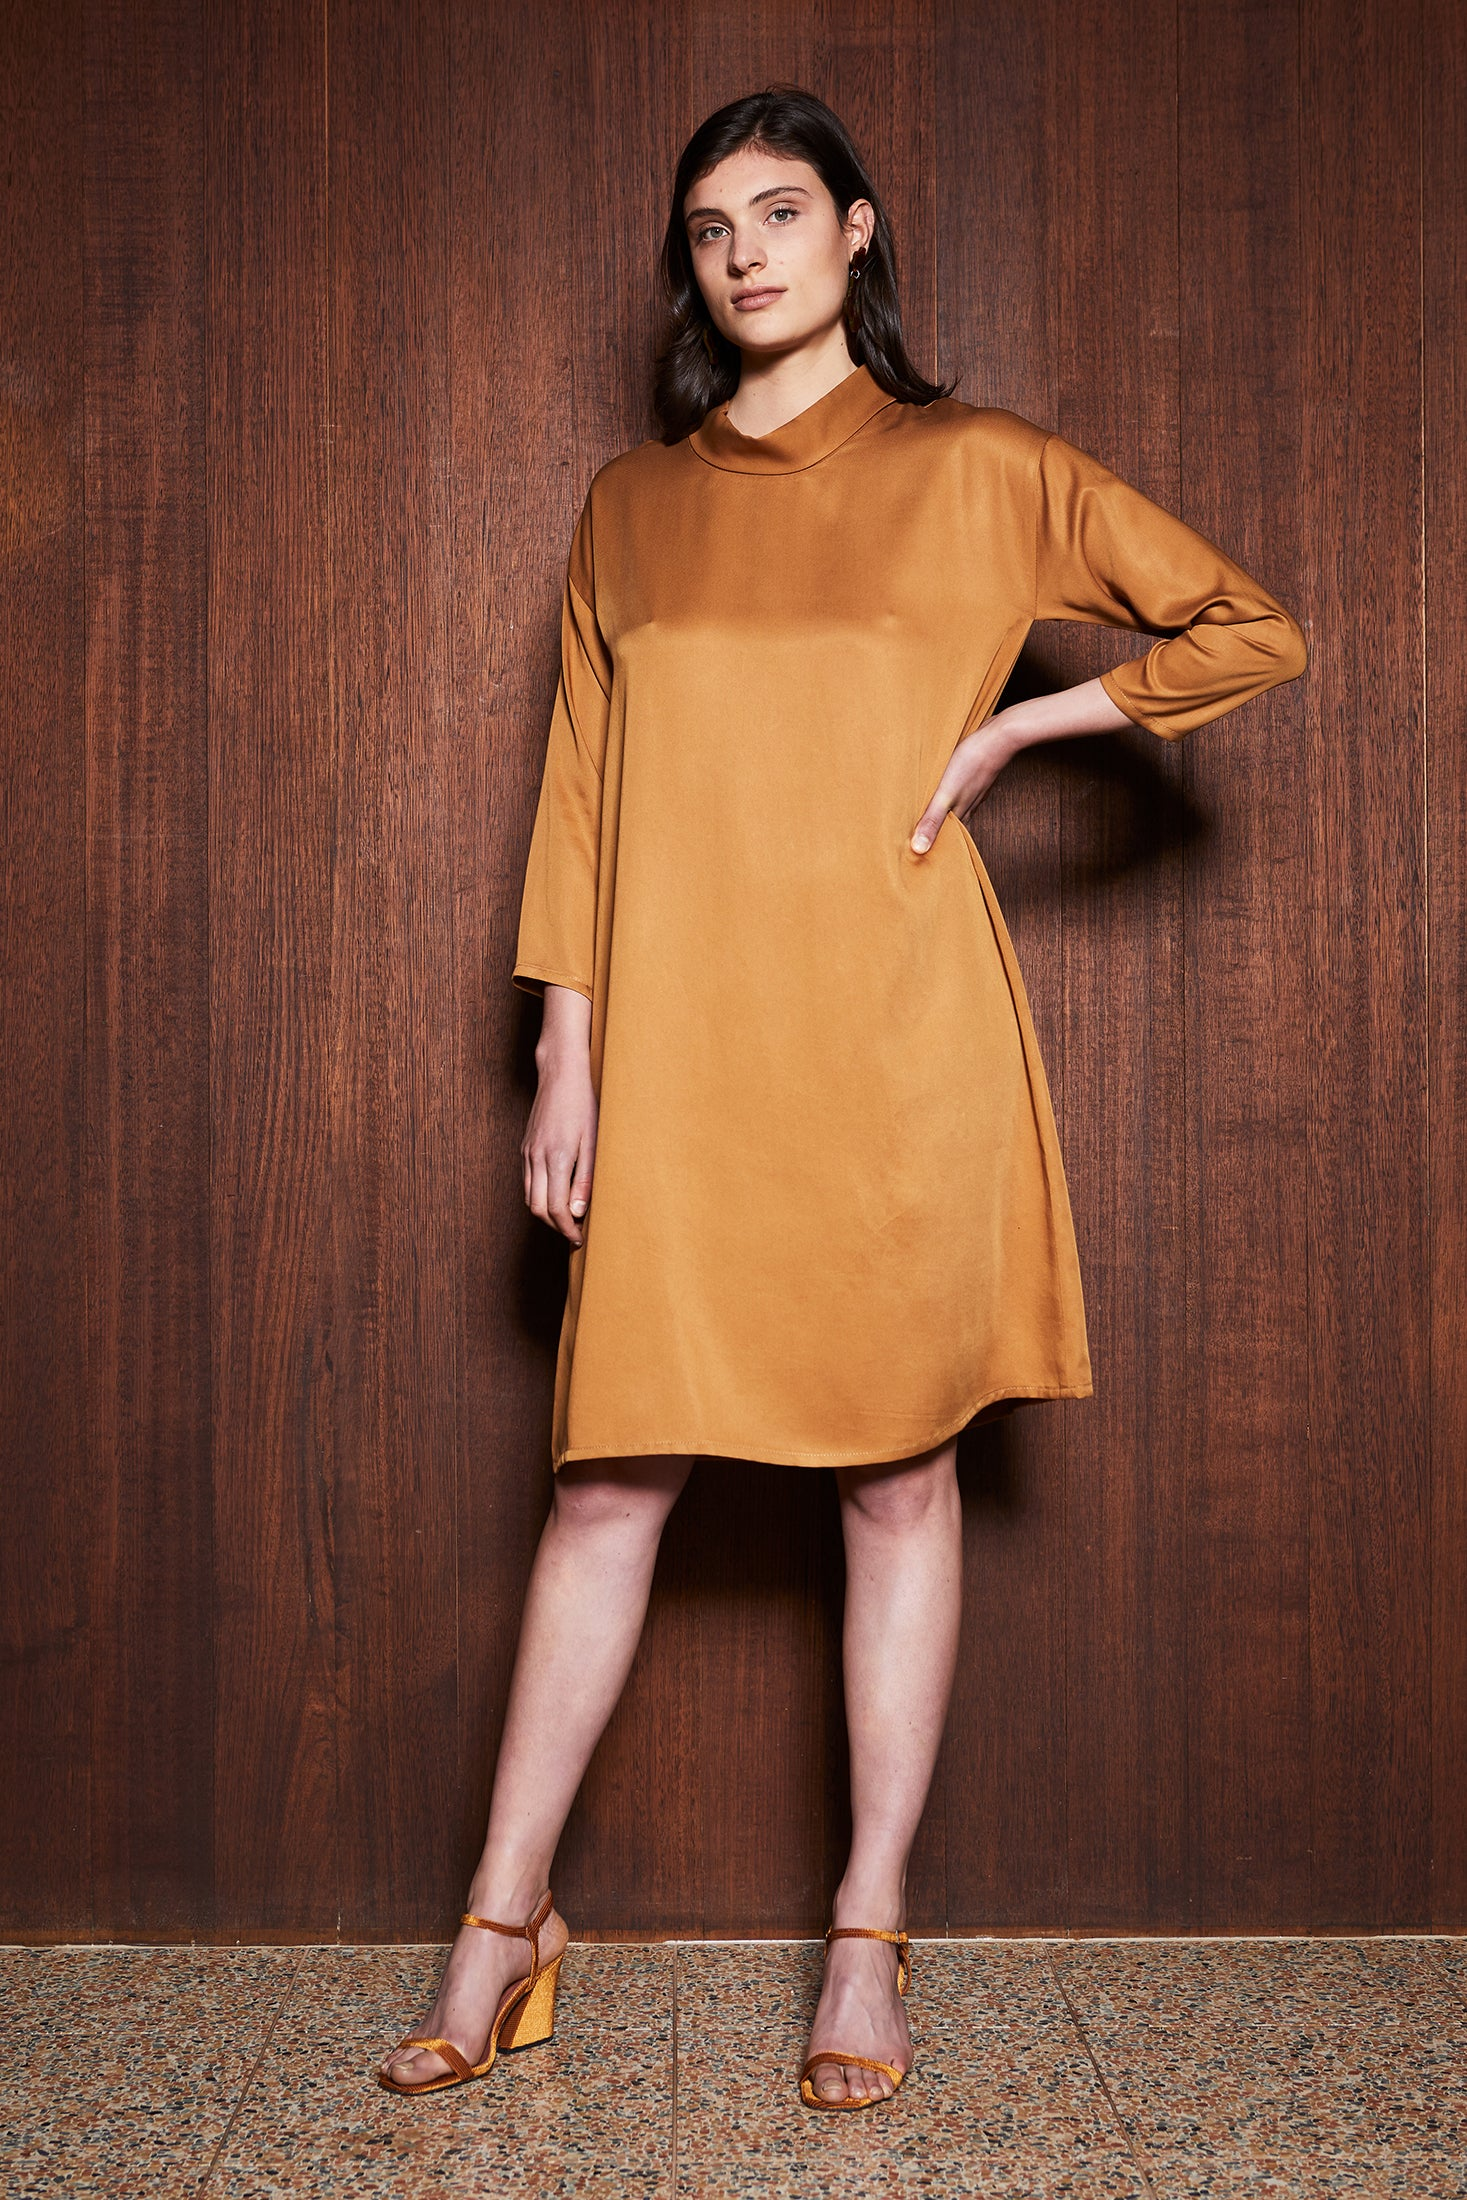 Women's Clothing in Melbourne Australia Leaf Litter Dress Mustard Gold Tencel Turtleneck